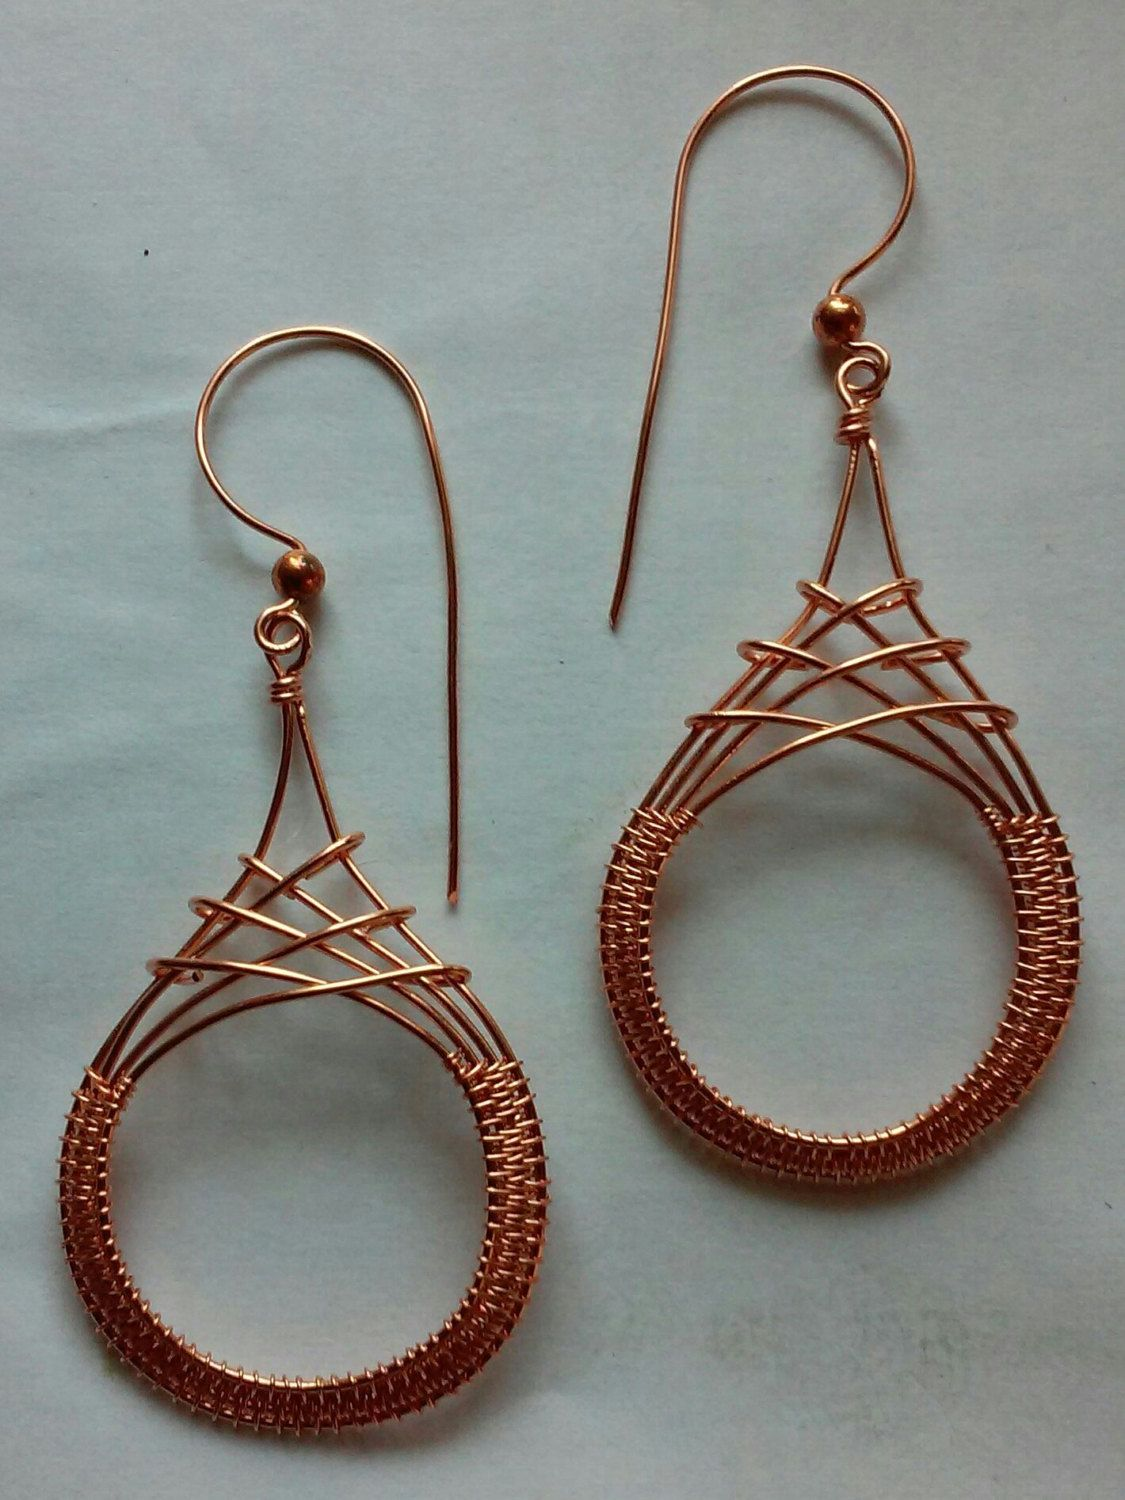 Criss Cross Earrings in Copper, Wire Wrapped Earrings, Wire Wrapped ...